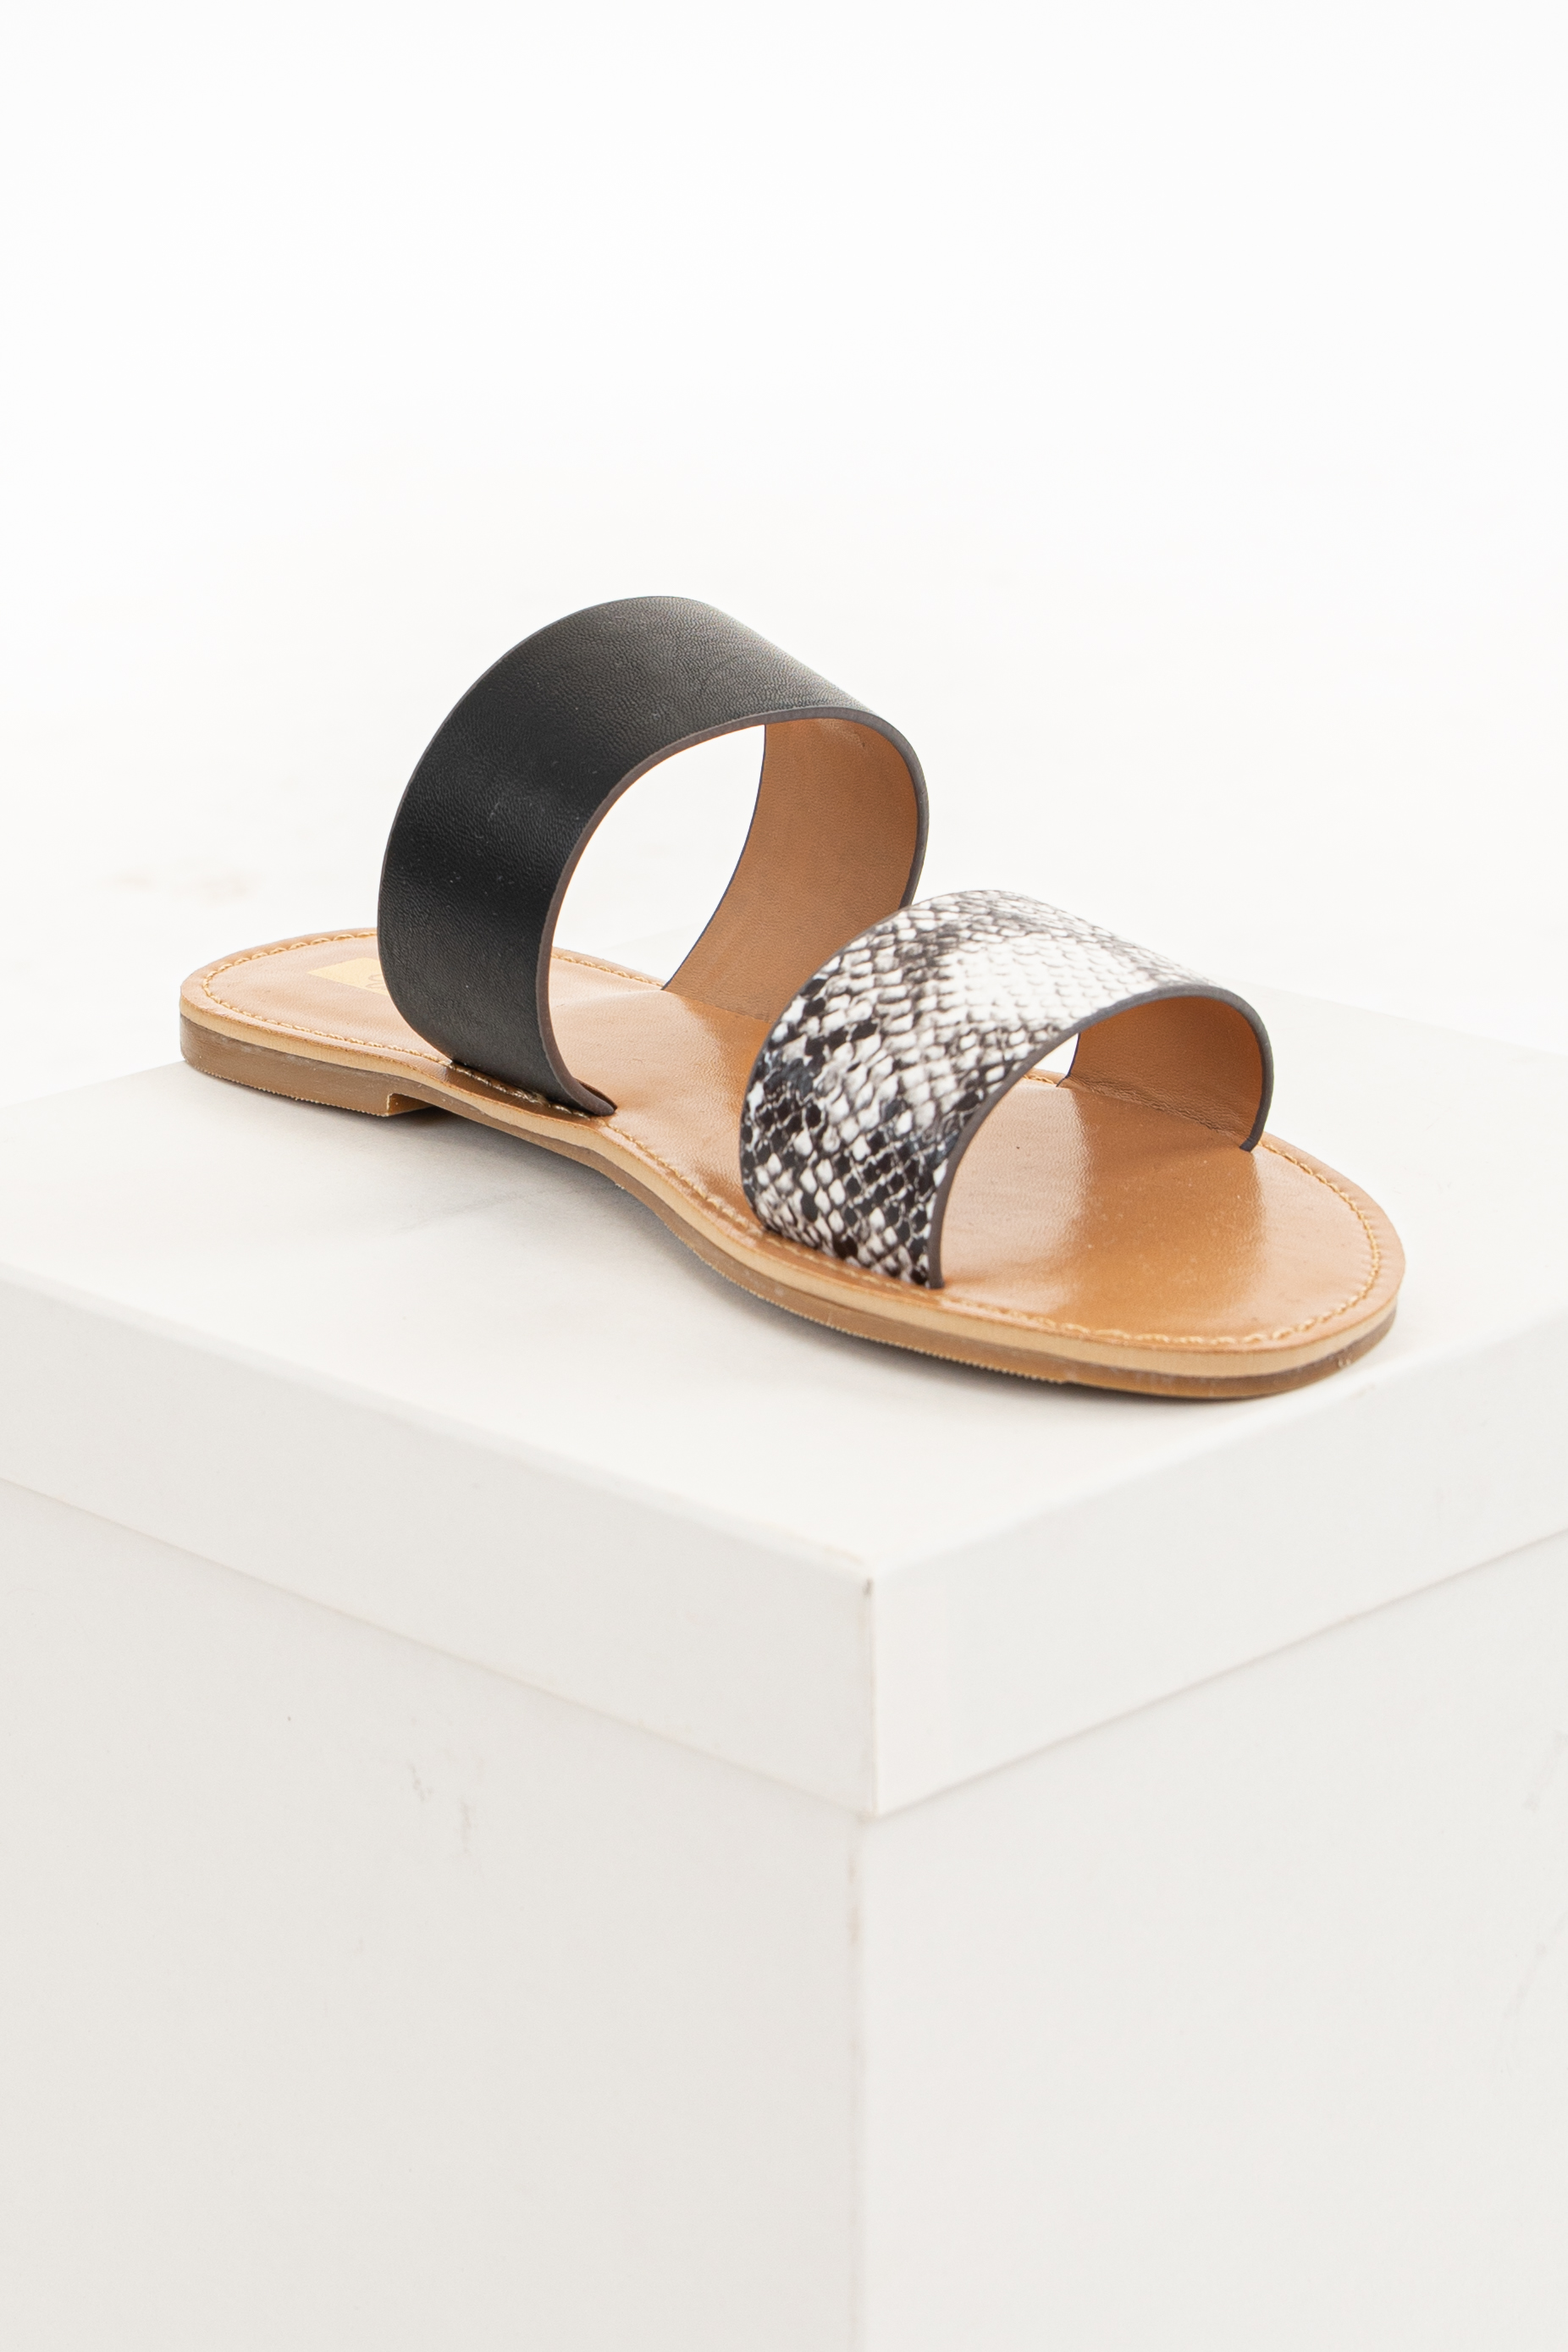 Black and Snake Print Faux Leather Strappy Slip On Sandal